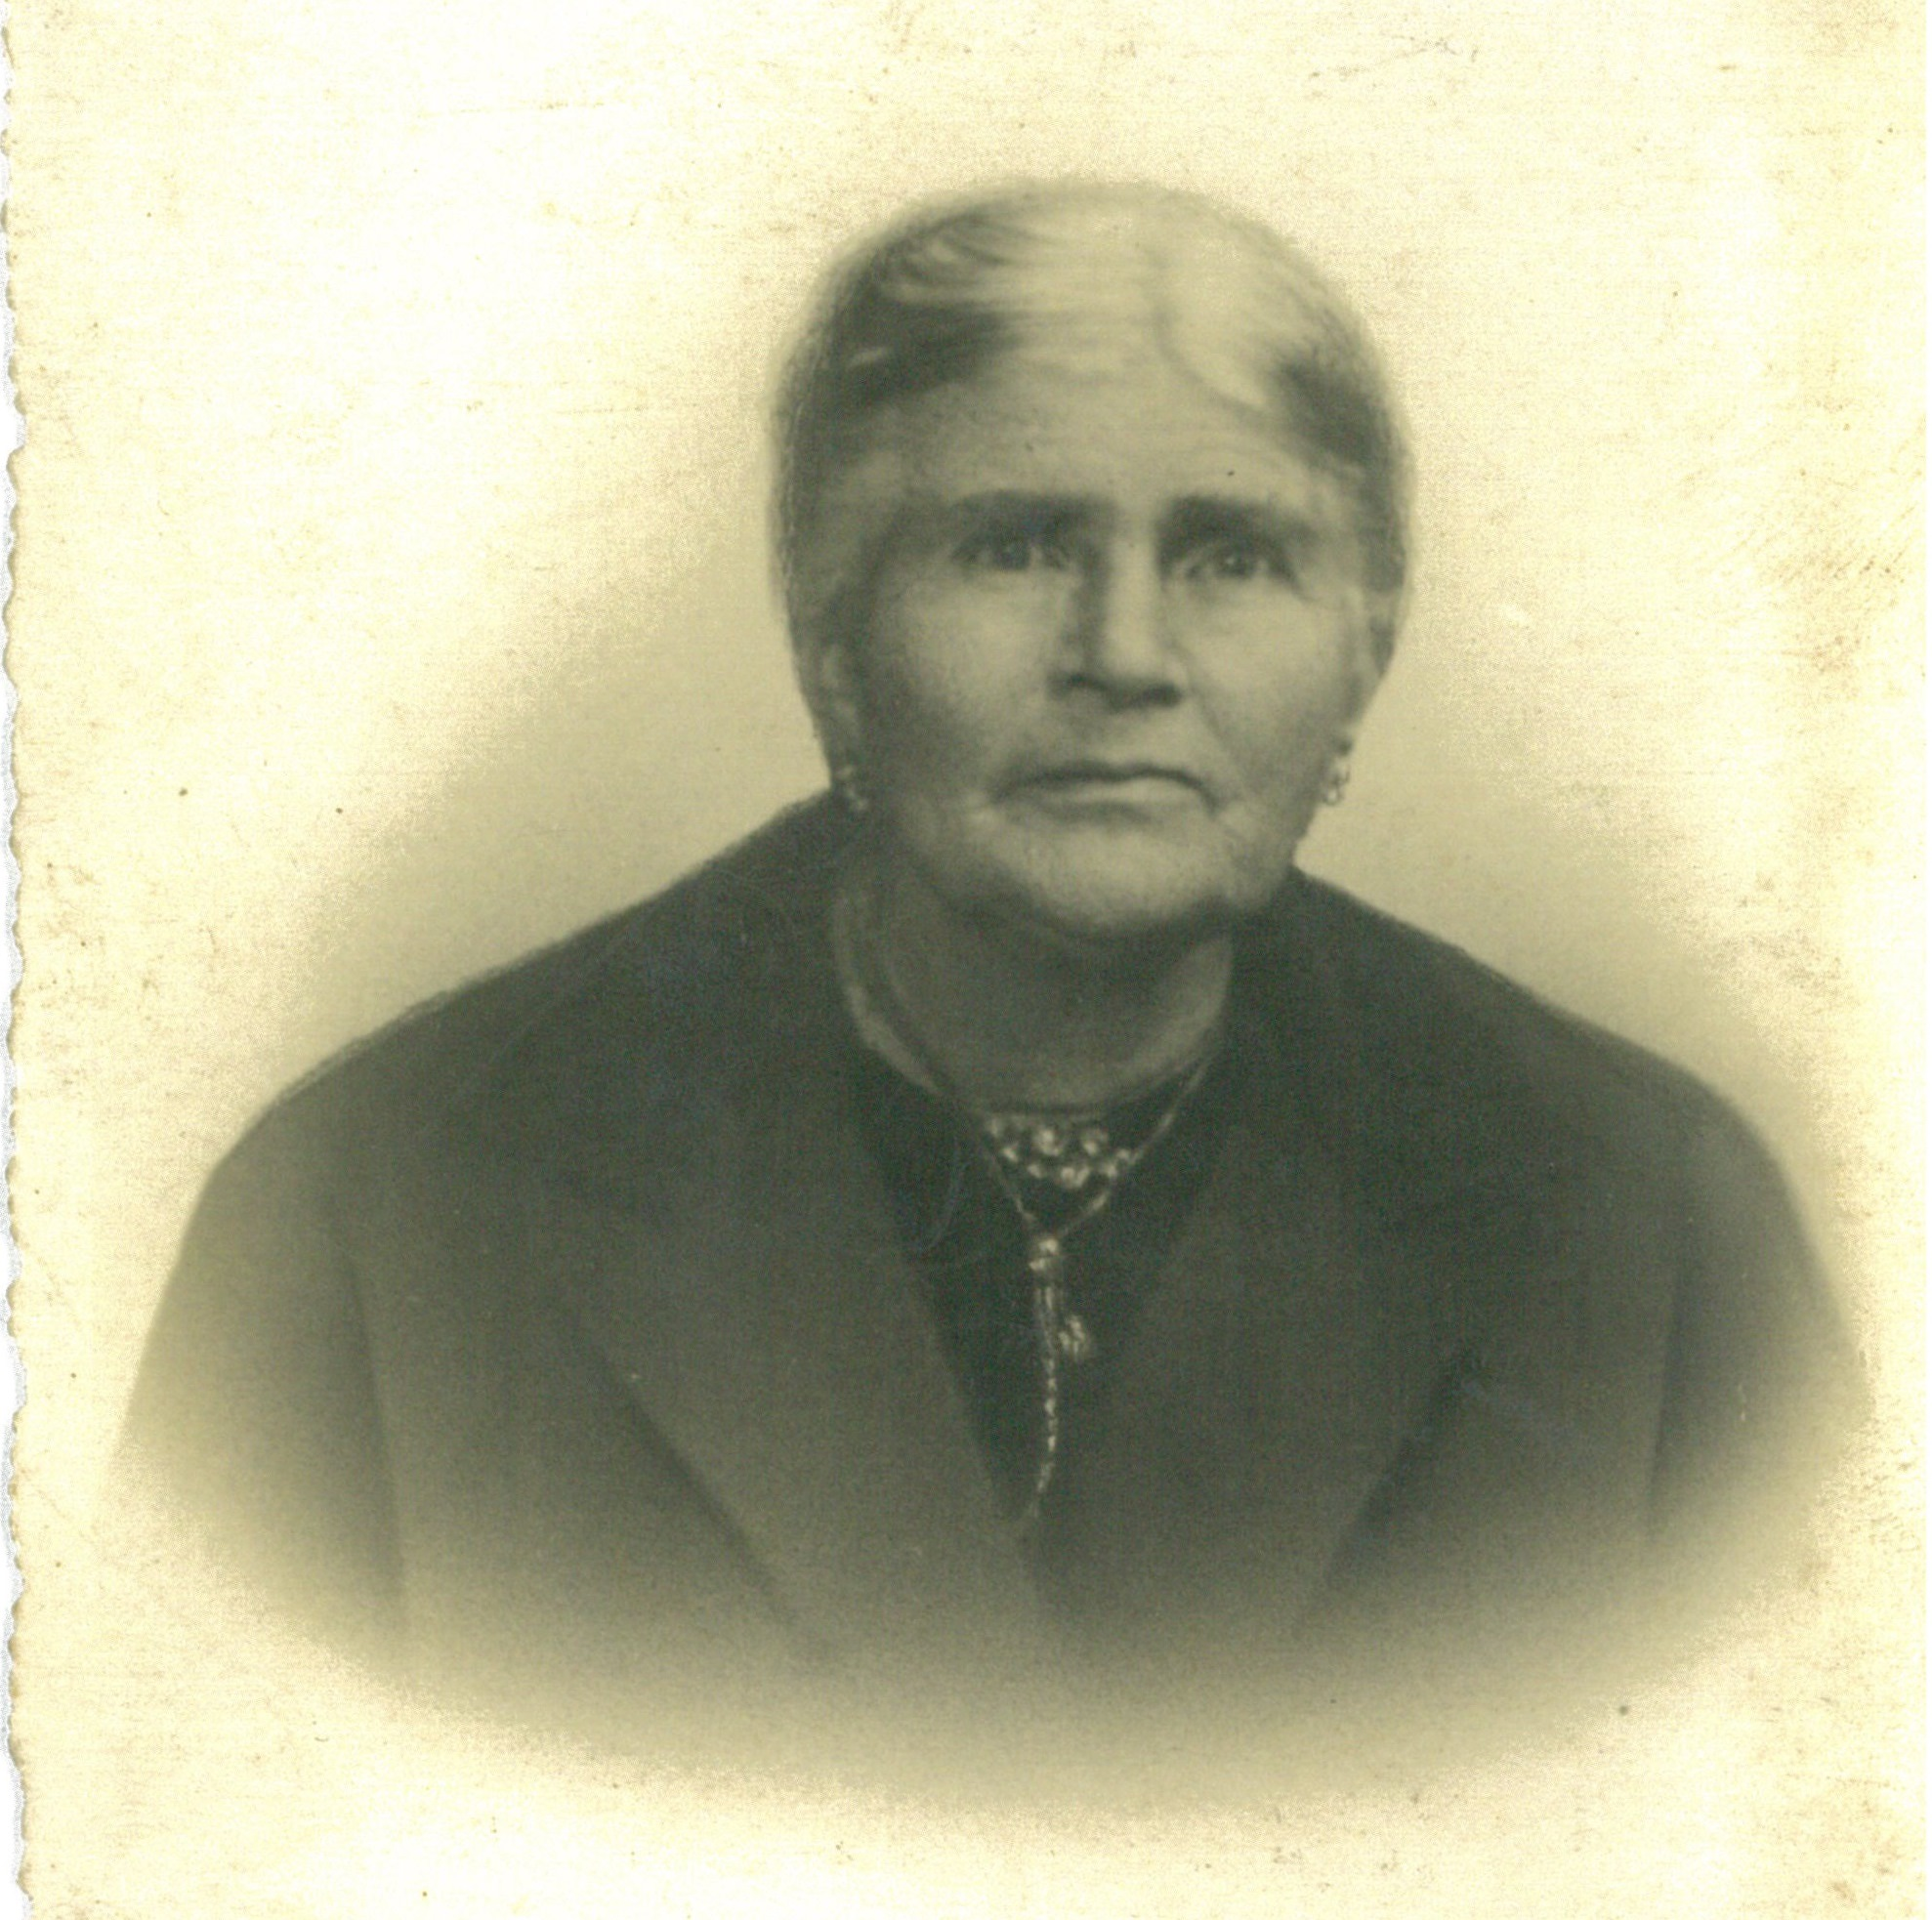 grandmother of Paula Indevuyst's husband